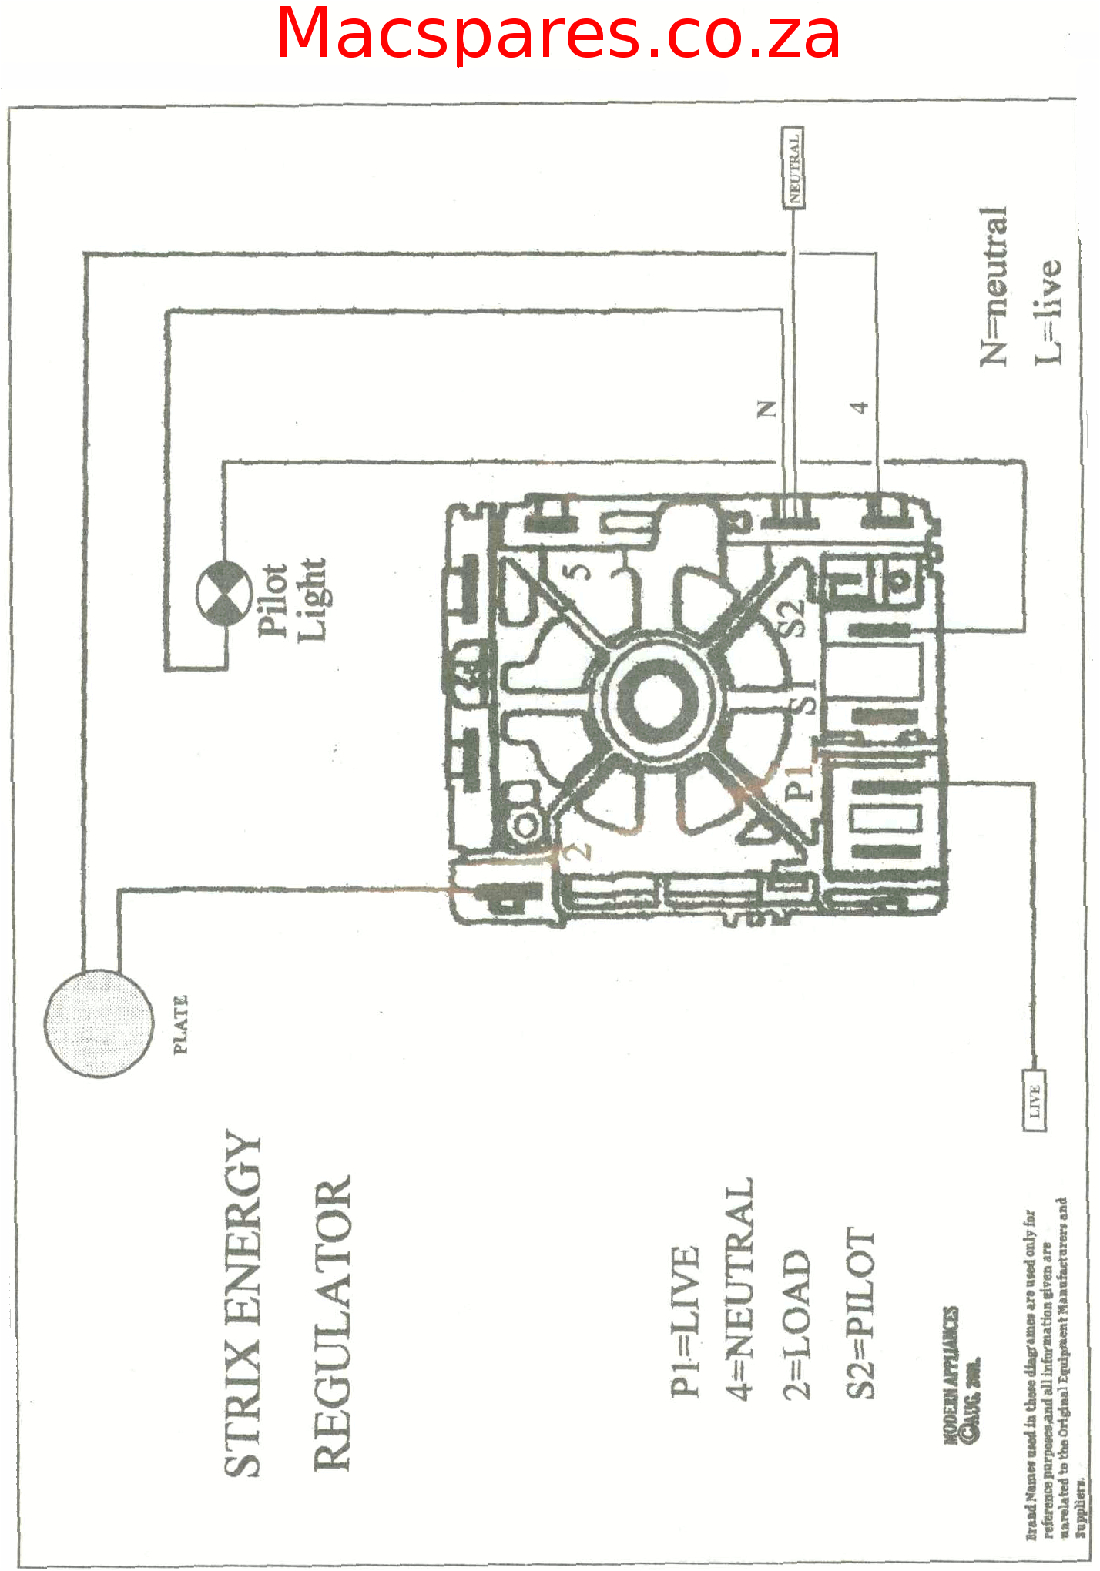 4 Plate Stove Wiring Diagram Wiring Diagrams Stoves Switches and thermostats